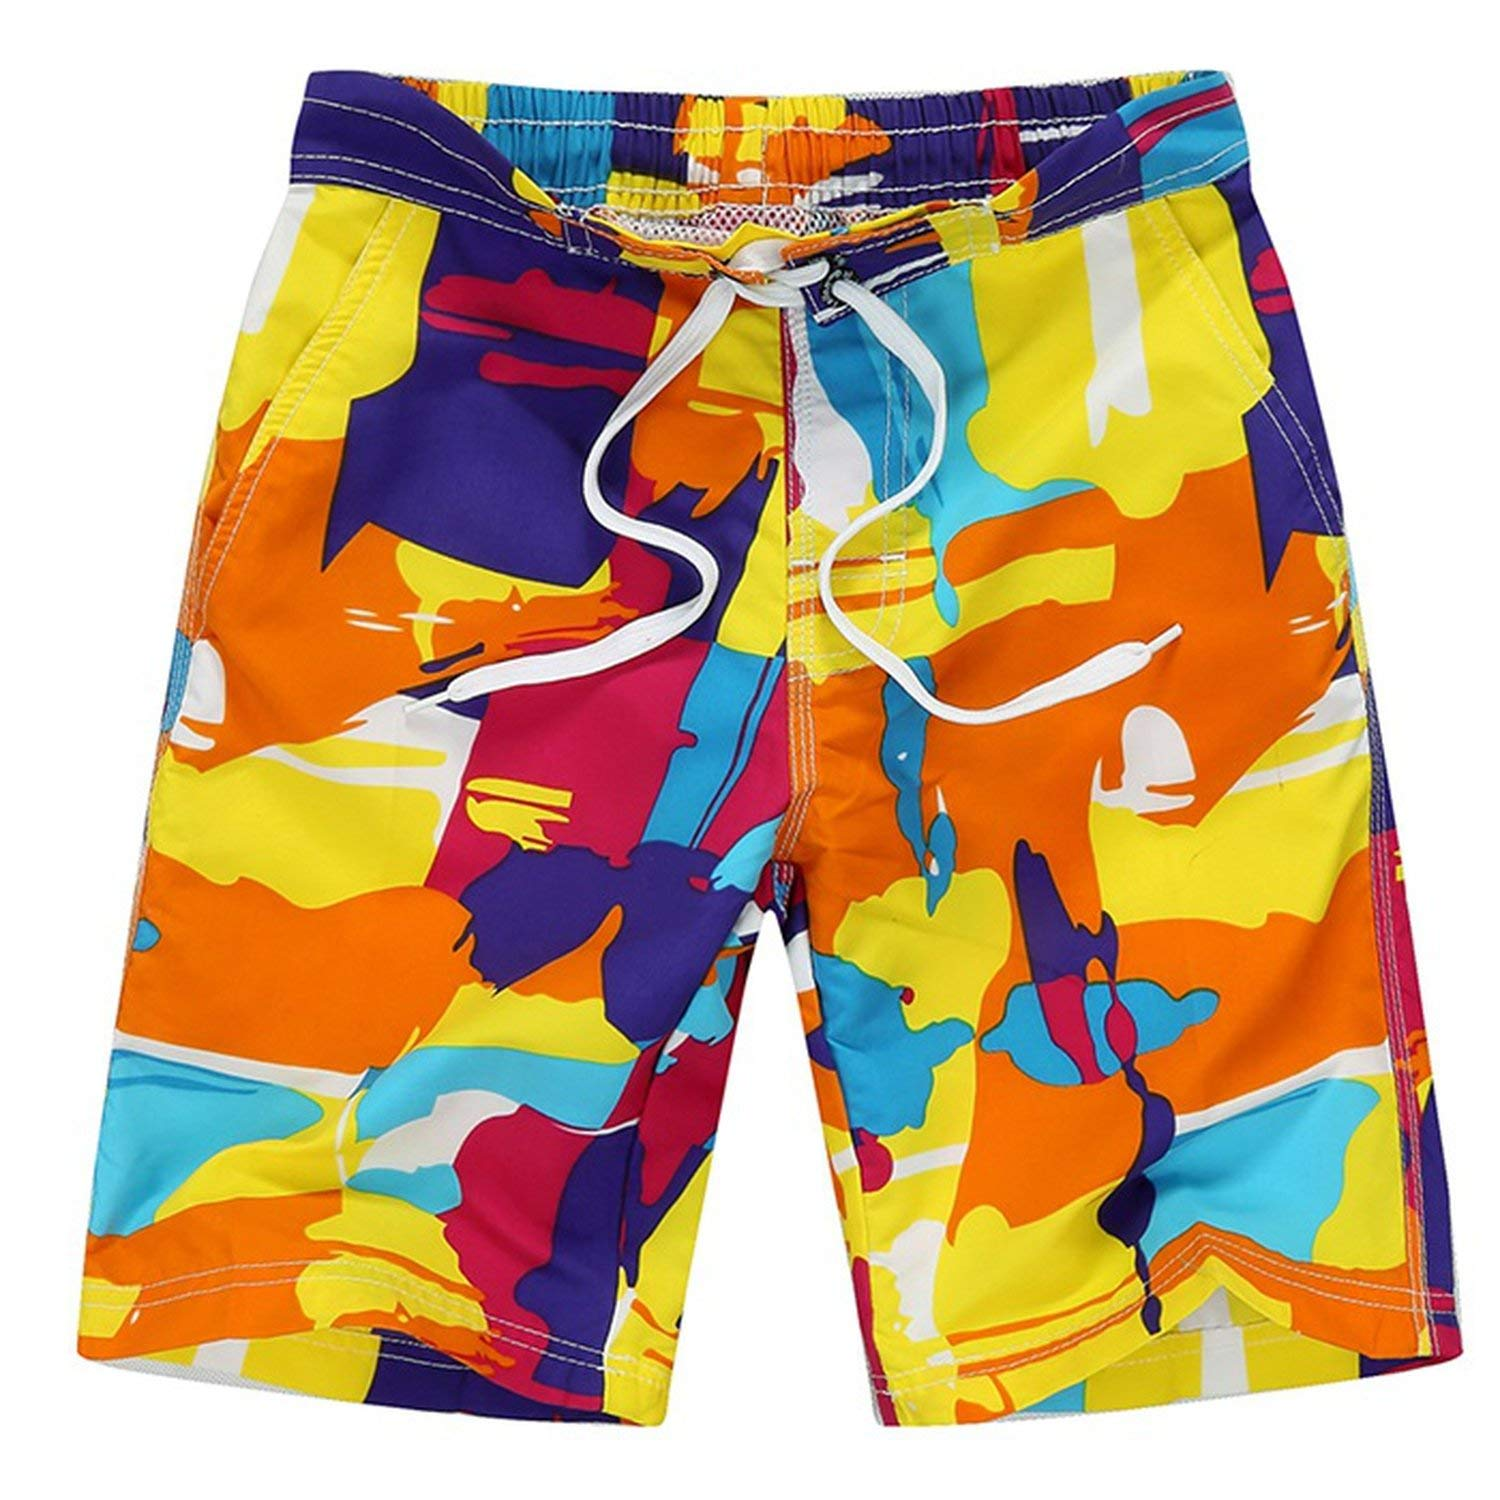 Perfect-Sense-Show 7-14yrs Camouflage Boys Beach Shorts New Fashion Beach Shorts Summer Children Swim Shorts S